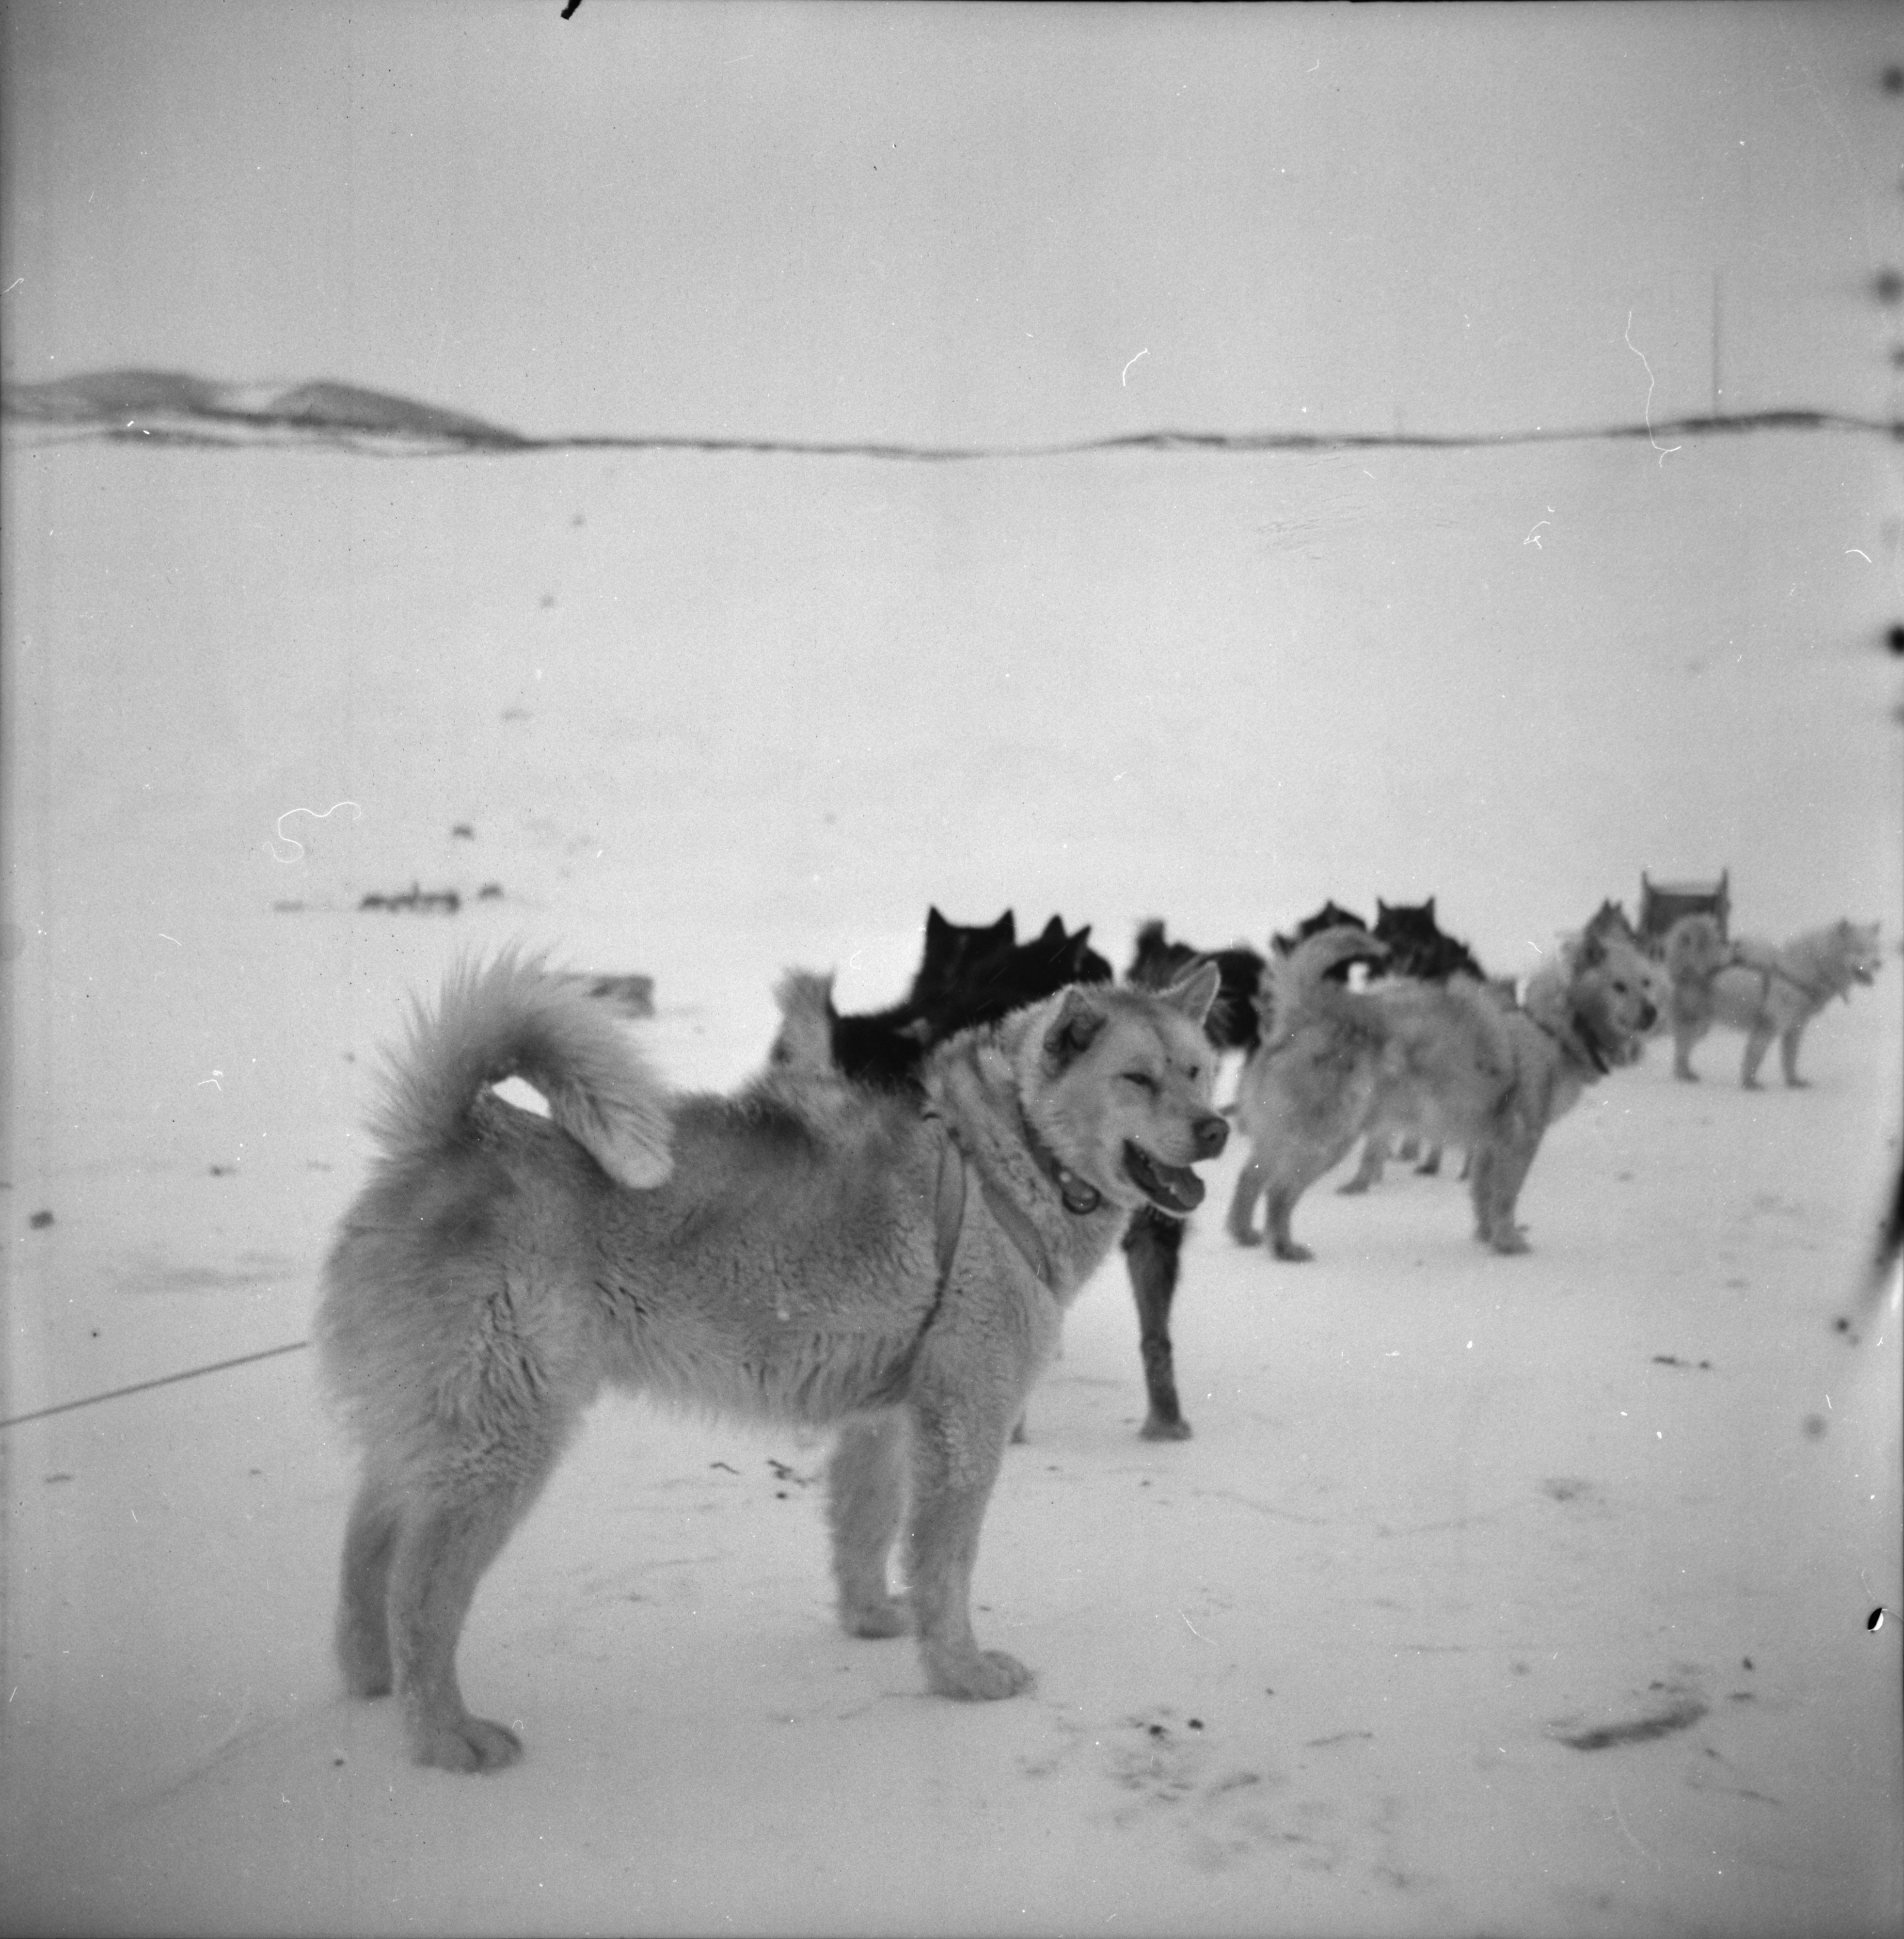 Sled Dogs at New Zealand's Scott Base in Antarctica, November 1962 image